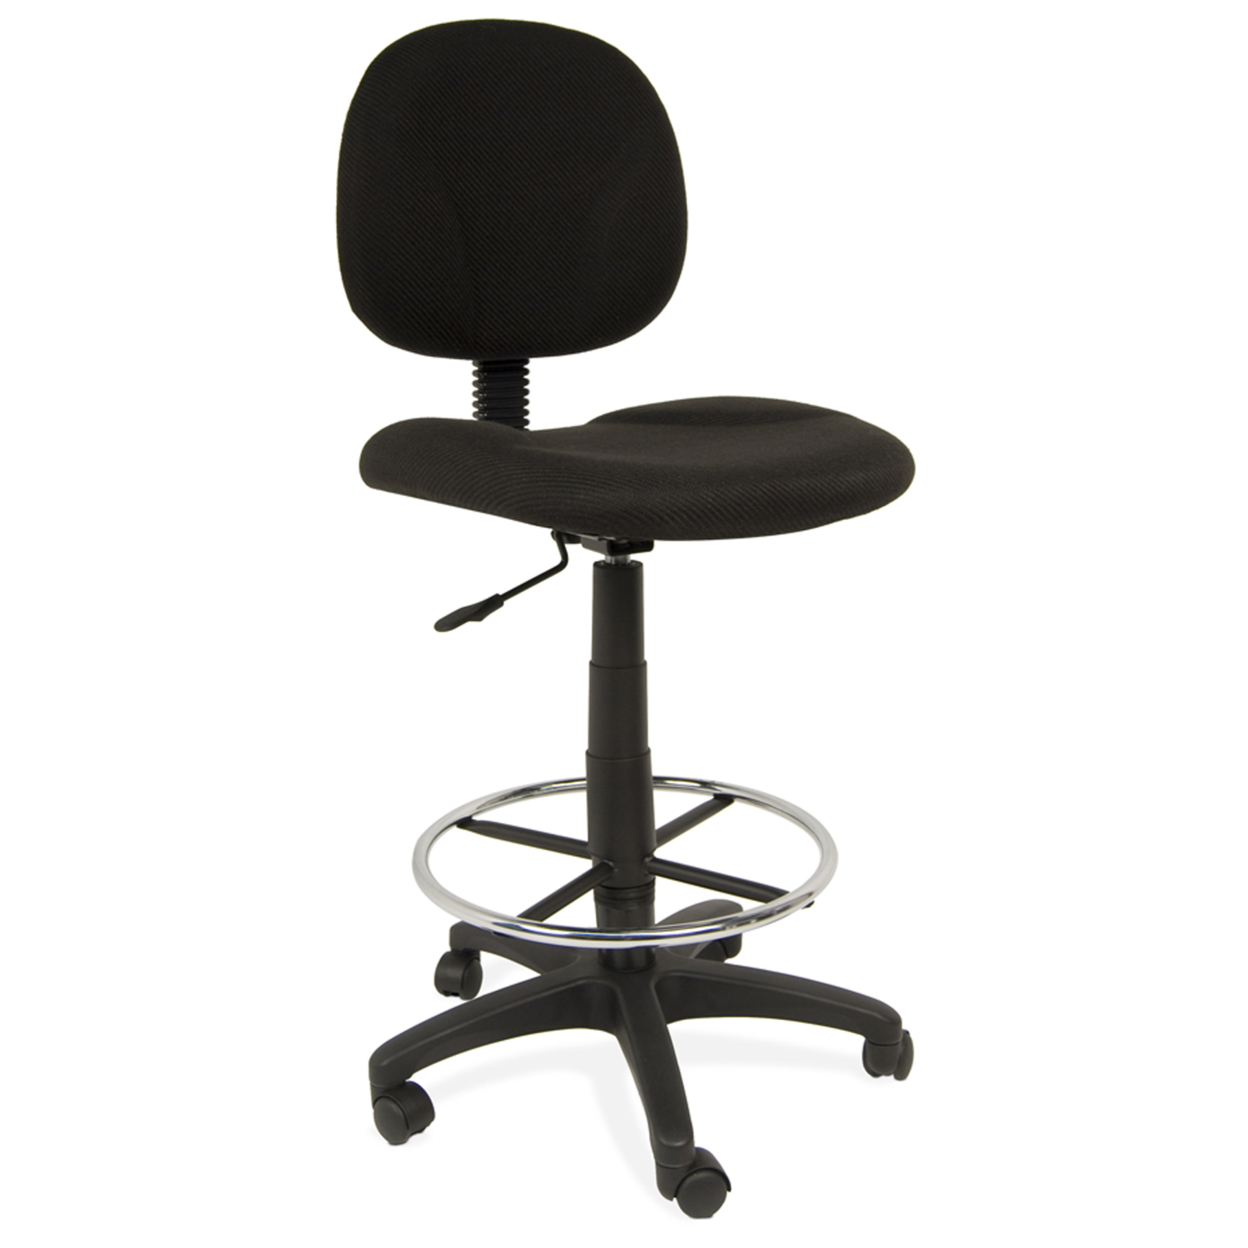 Studio Designs Home Office Ergo Pro Chair - Black